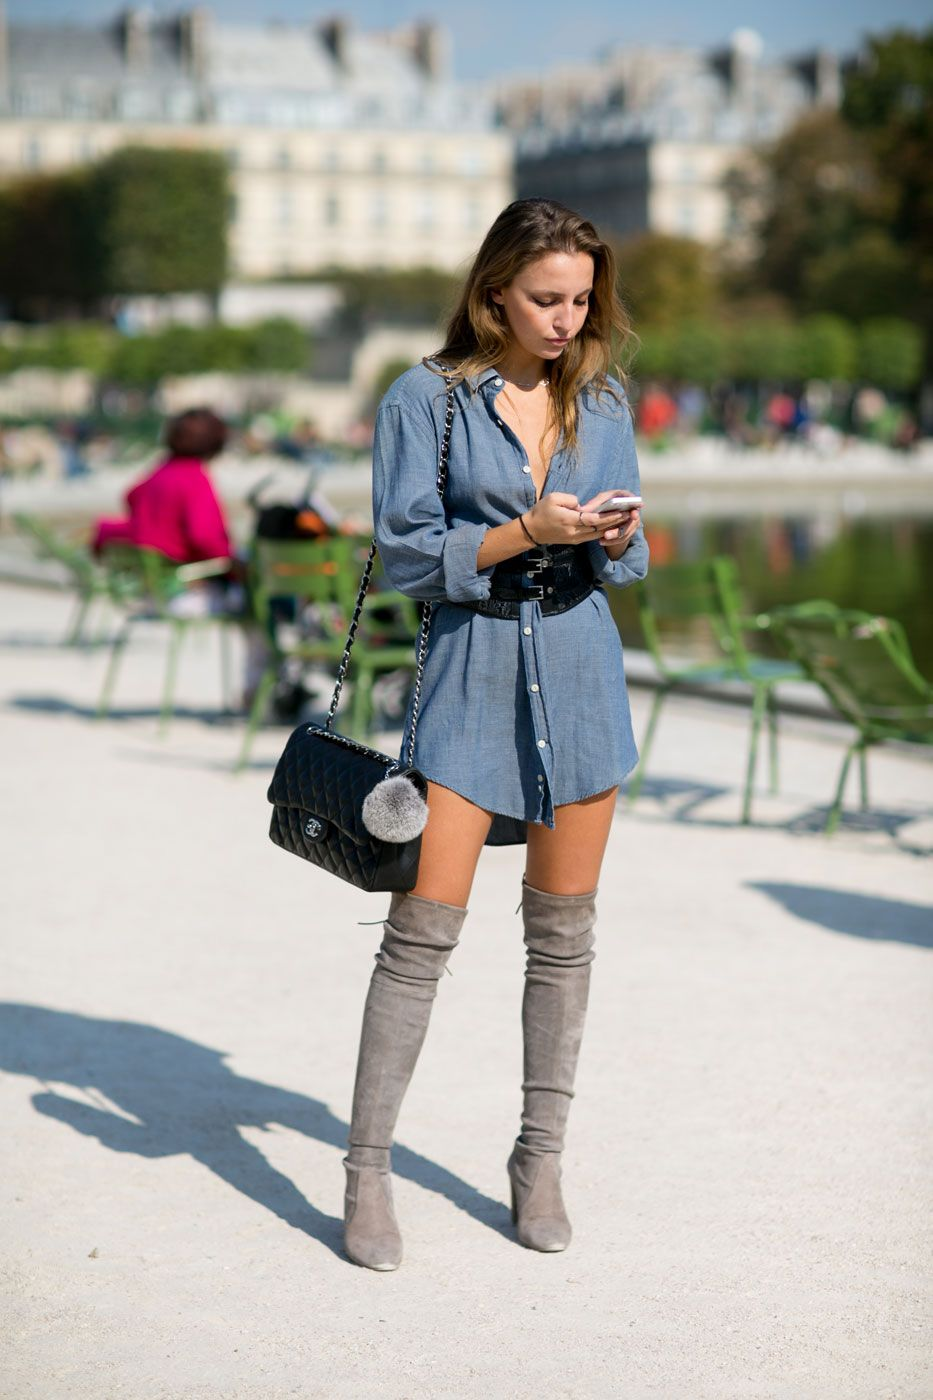 5c473f2023ca1 Over-the-Knee Boots Aren t Going Anywhere  30 New Ways to Wear  Yours StyleCaster waysify